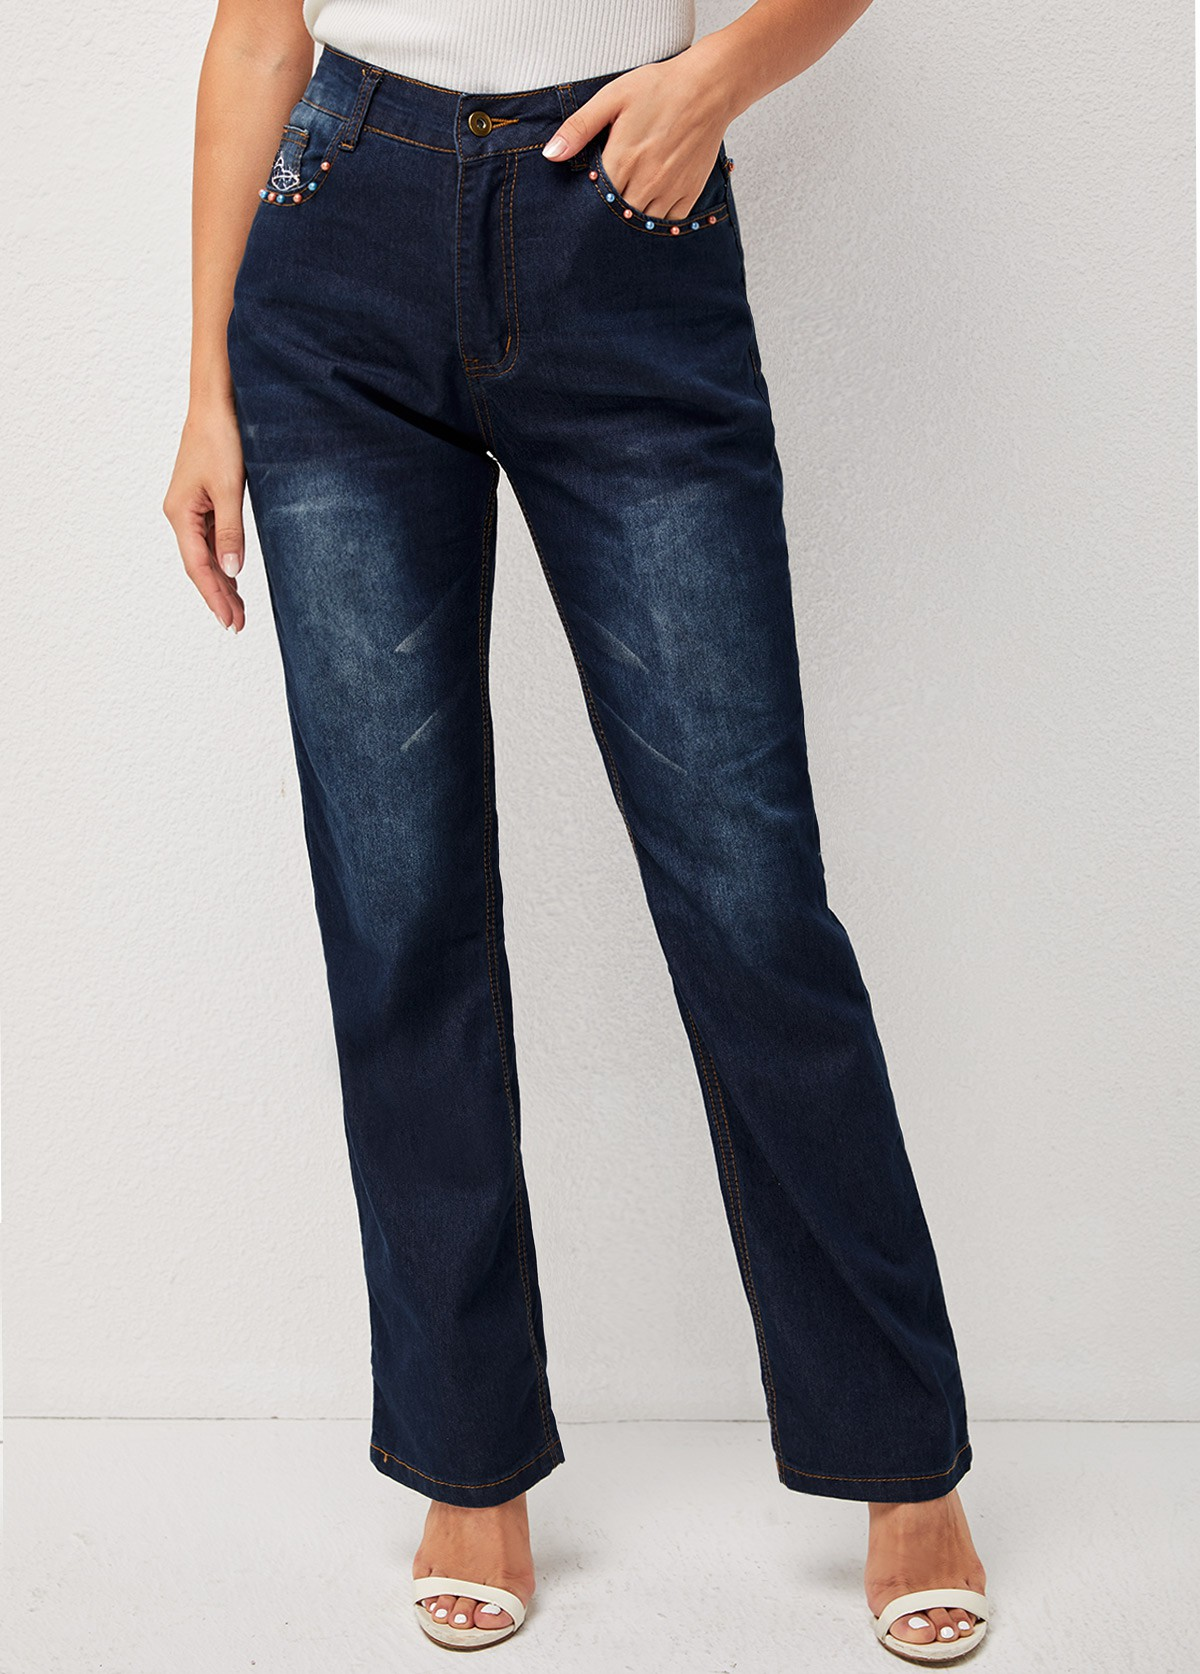 Double Side Pocket Beads Solid Jeans